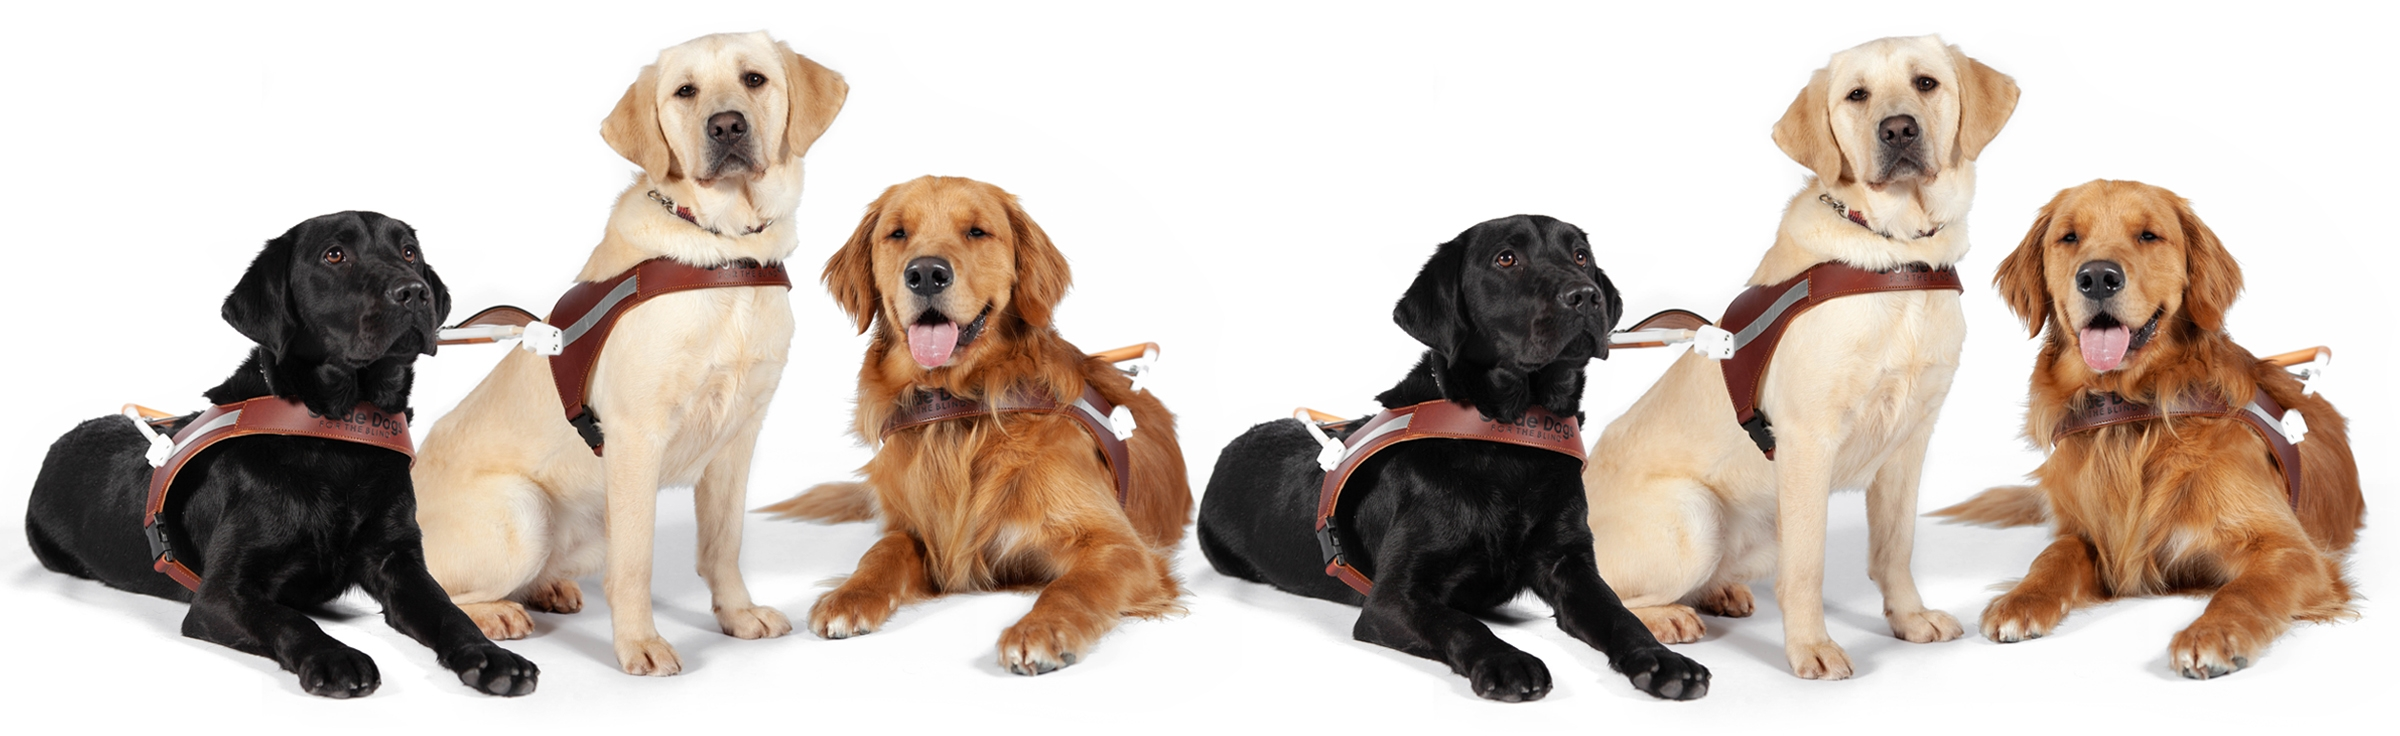 A line of six guide dogs wearing harnesses against a white background.